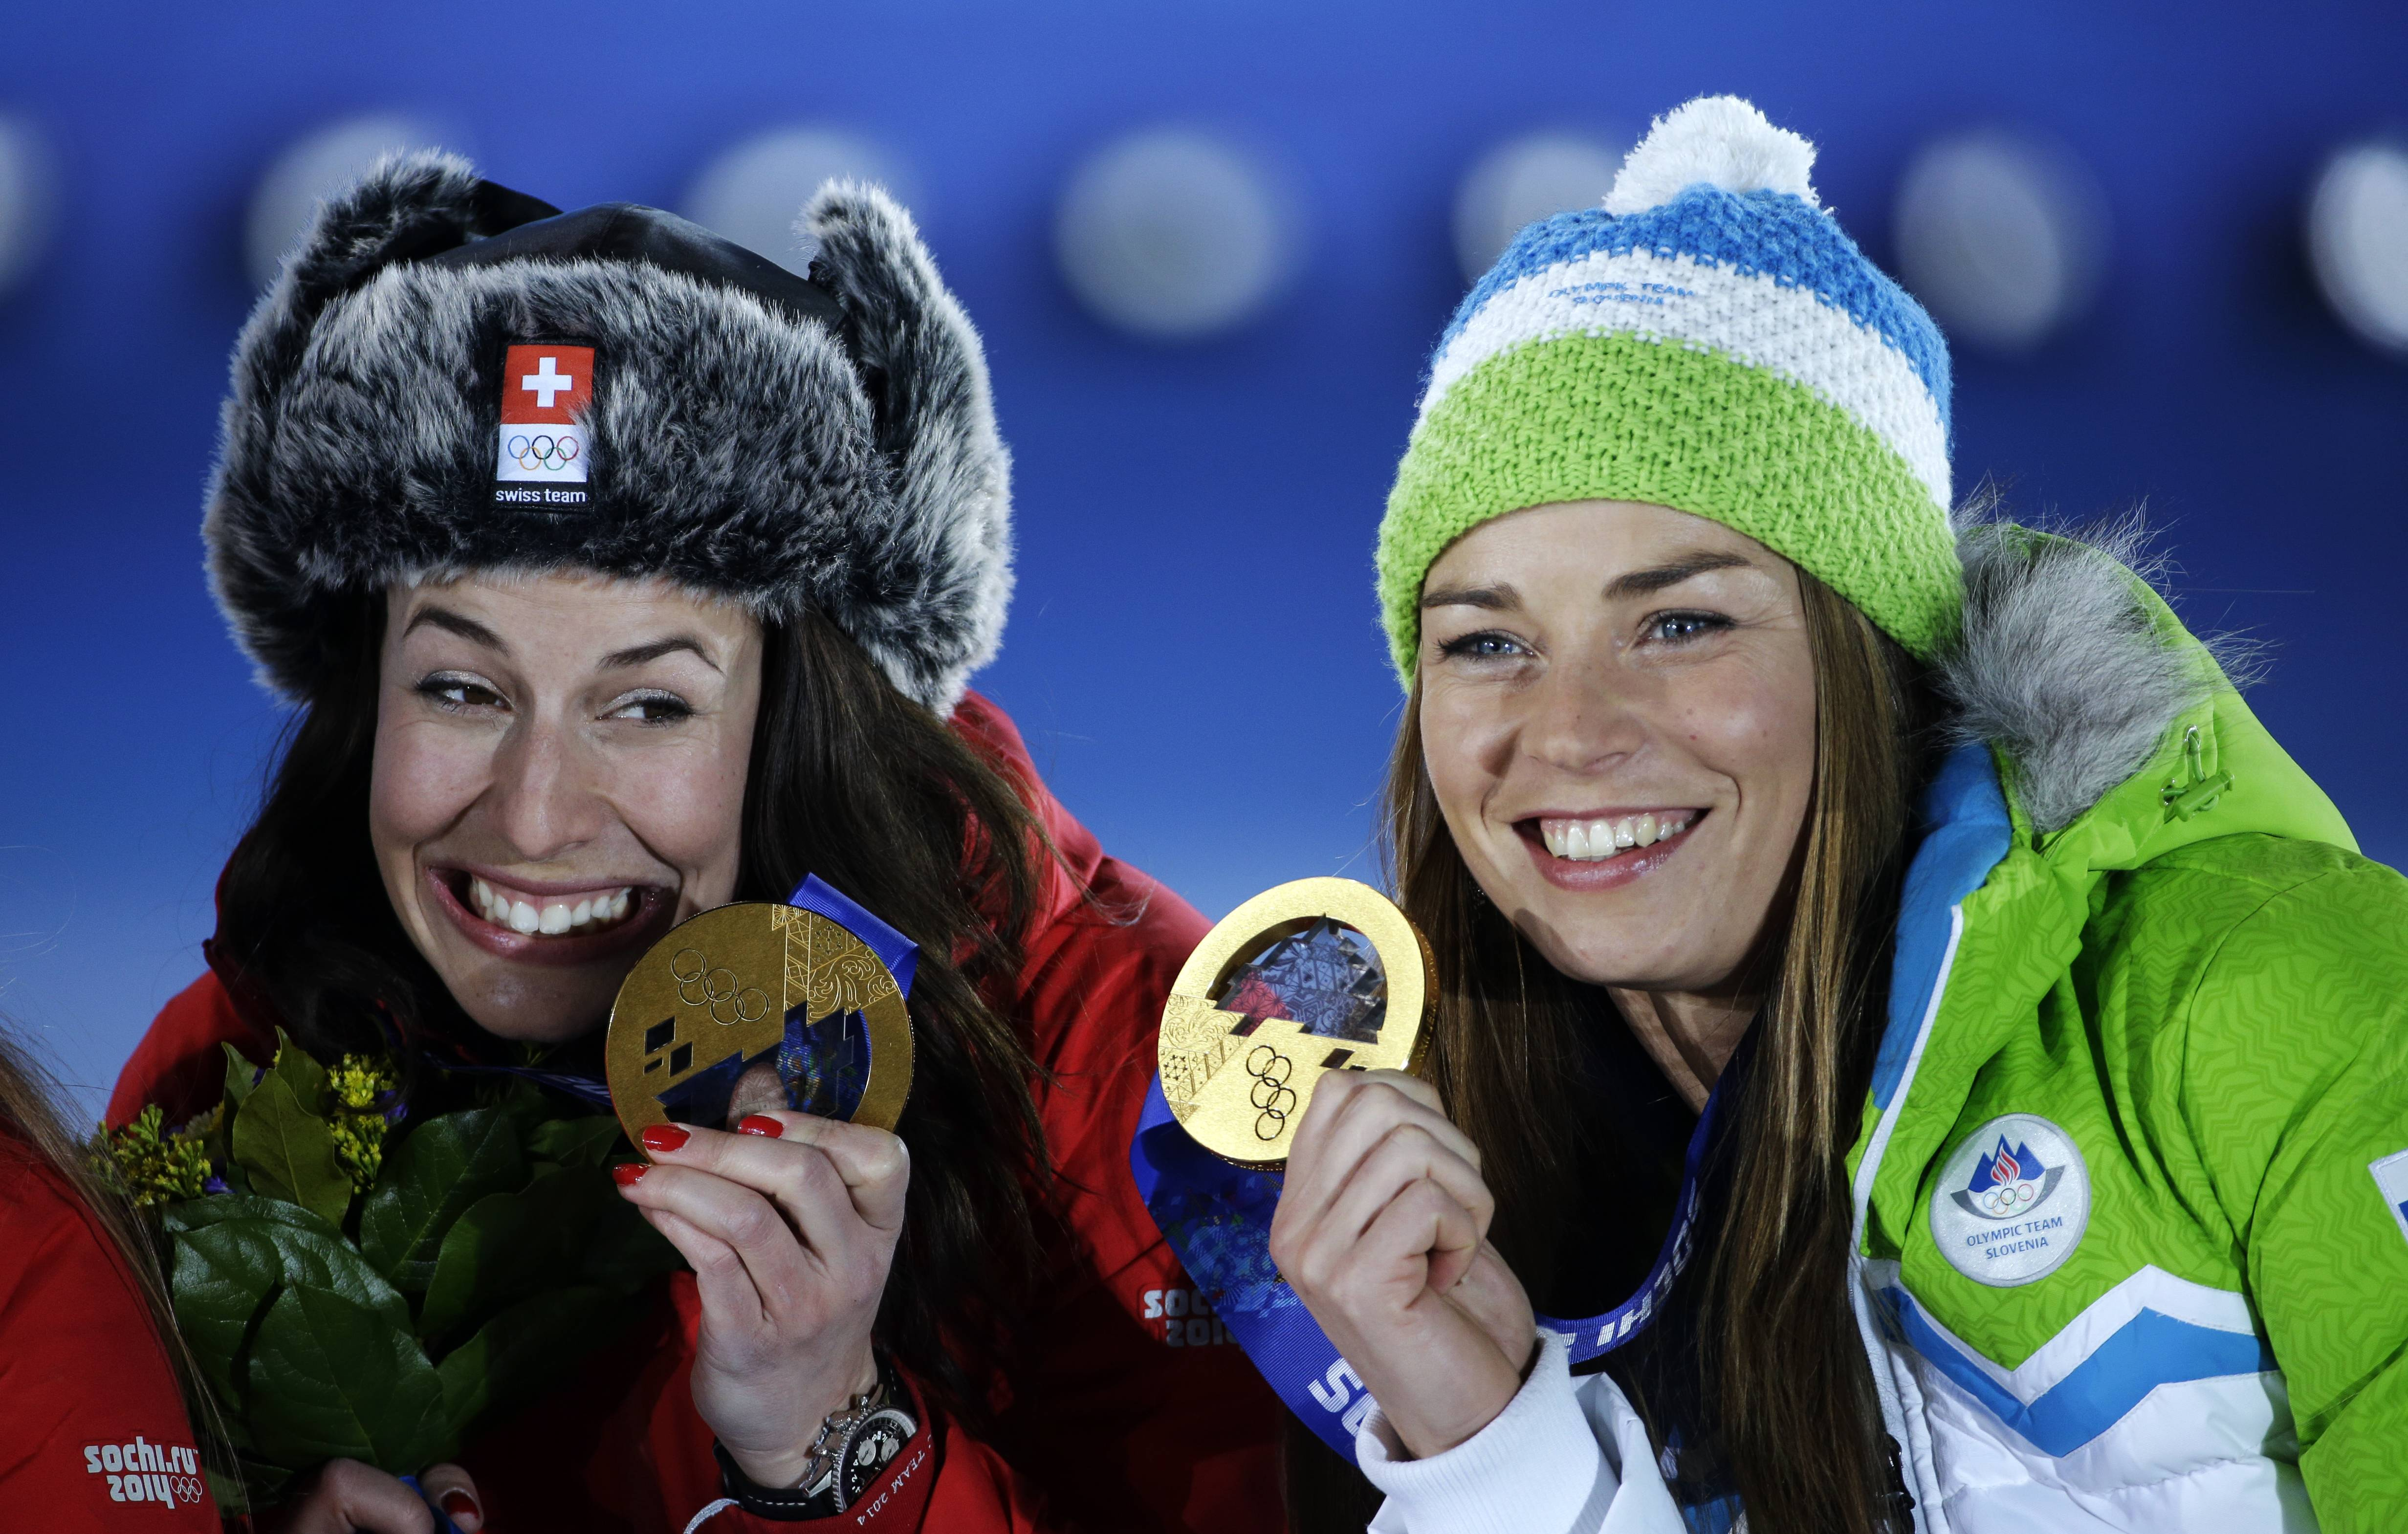 Dominique Gisin of Switzerland, left, and Tina Maze of Slovenia, right, who tied for the gold medal in the women's downhill pose during their medals ceremony.